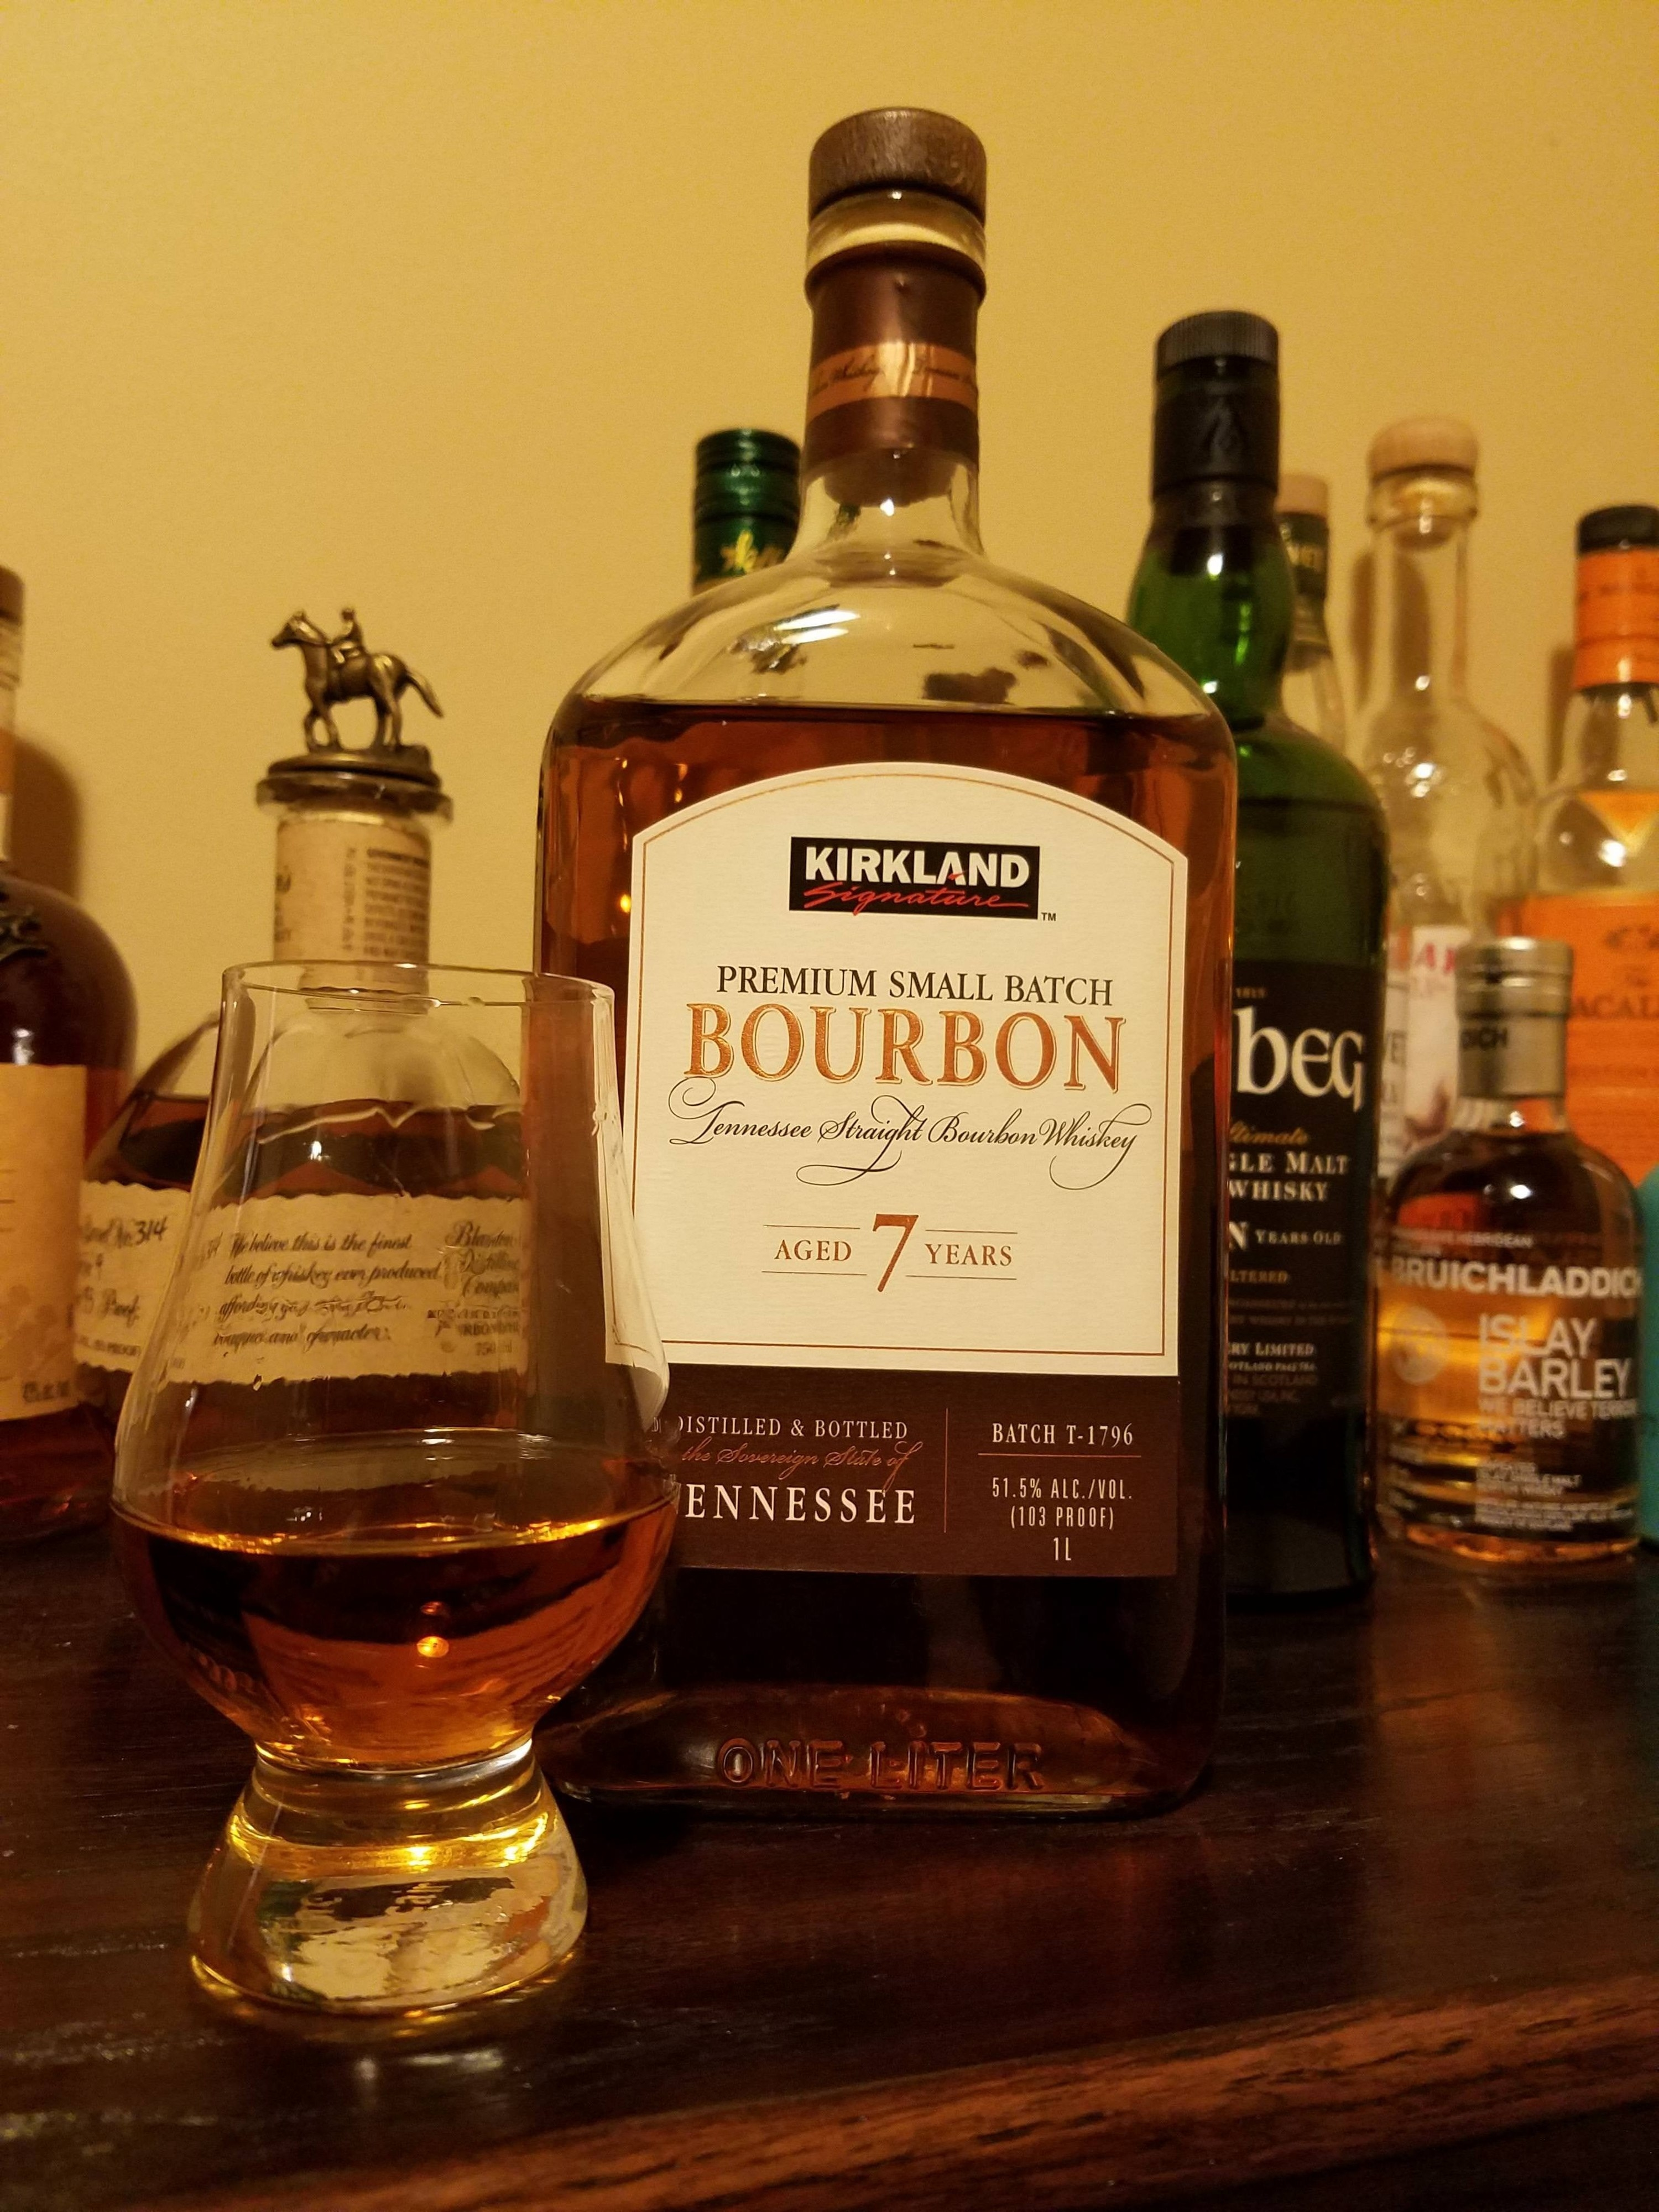 A bottle of Kirkland small batch 7 year aged whiskey and a glass of it.